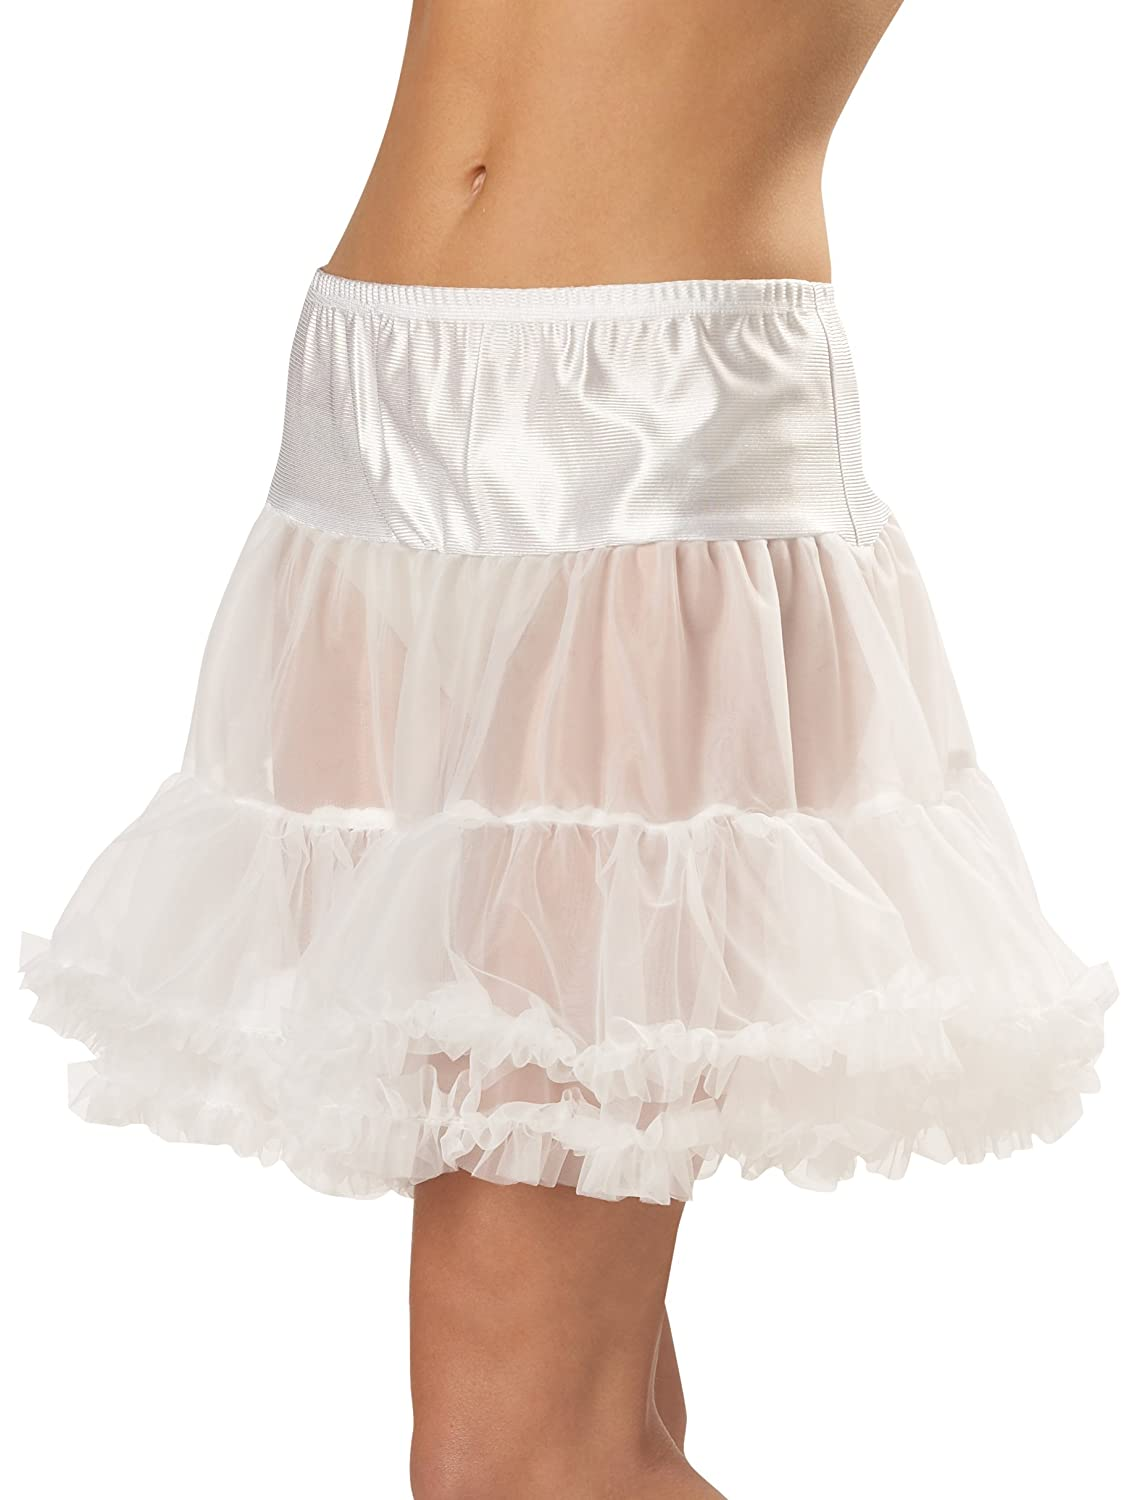 California Costumes Women's Ruffled Pettiskirt 60061